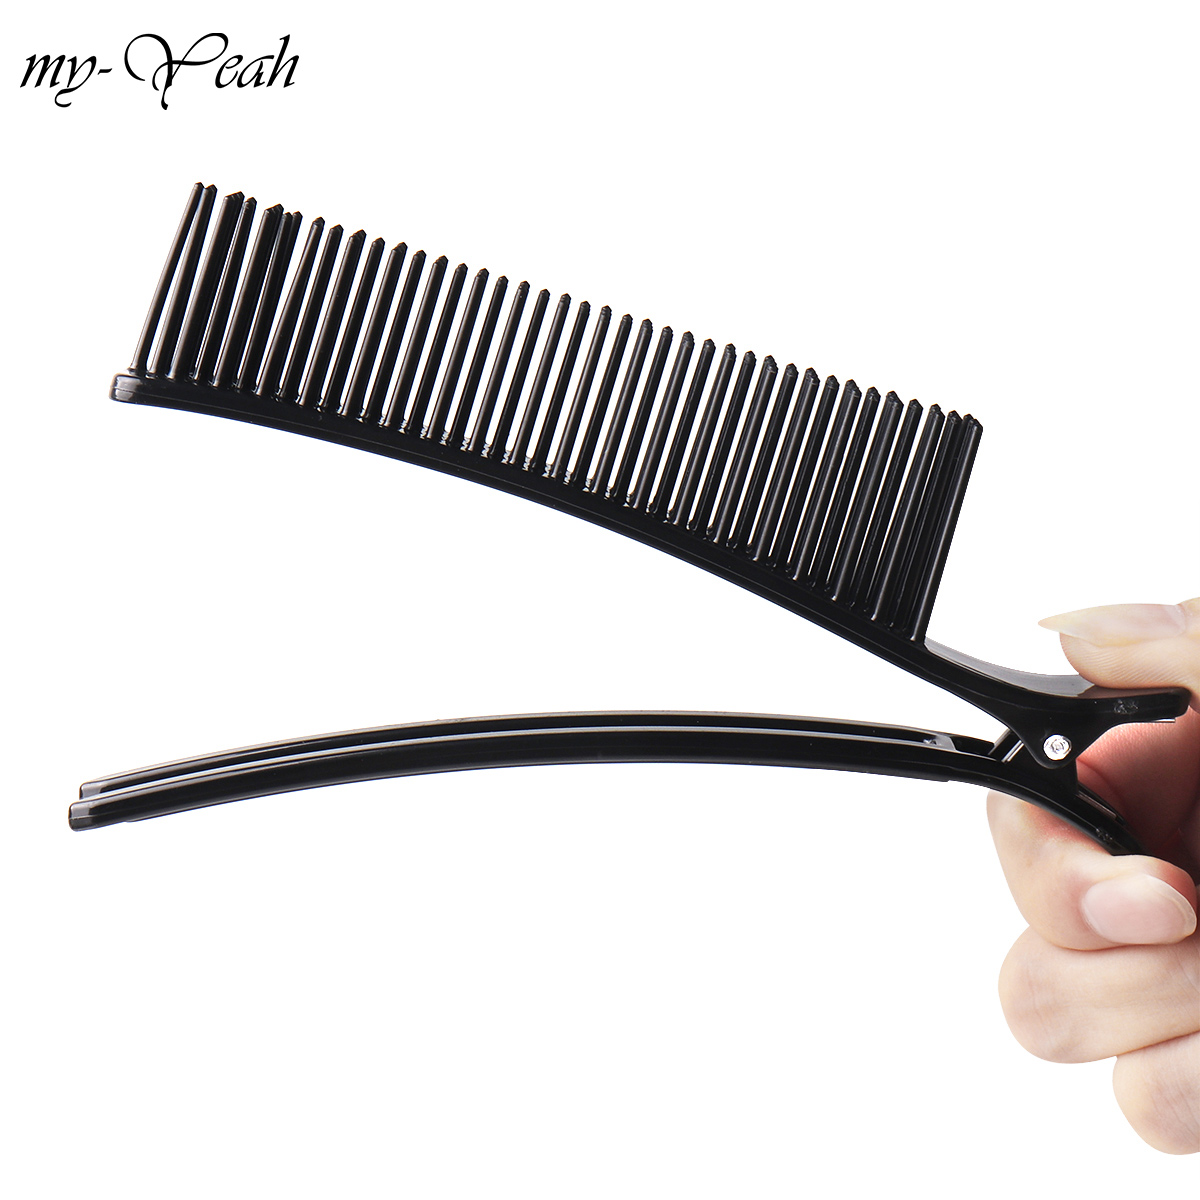 Professional Hair Clip Clamps Hairdressing Sectioning Cutting Comb Salon Drying Perm Dyeing Hairstyling Tool